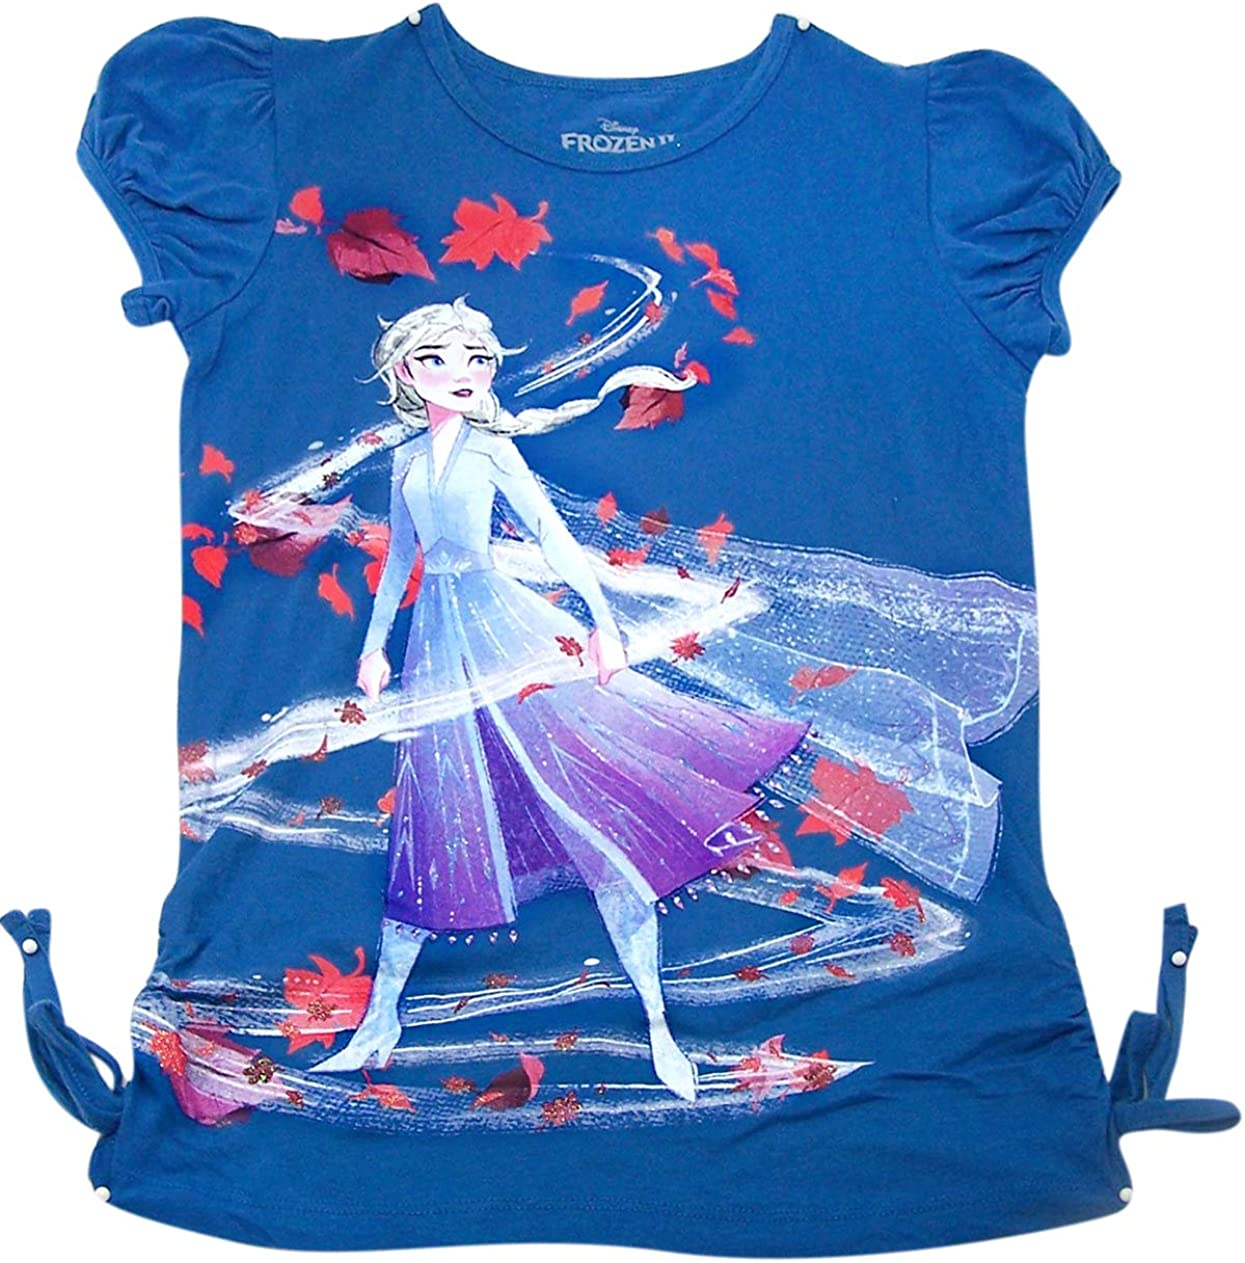 Details about  /Disney Frozen 2 T Shirt Tee Shirt Sisters For Ever BNWT Navy Blue